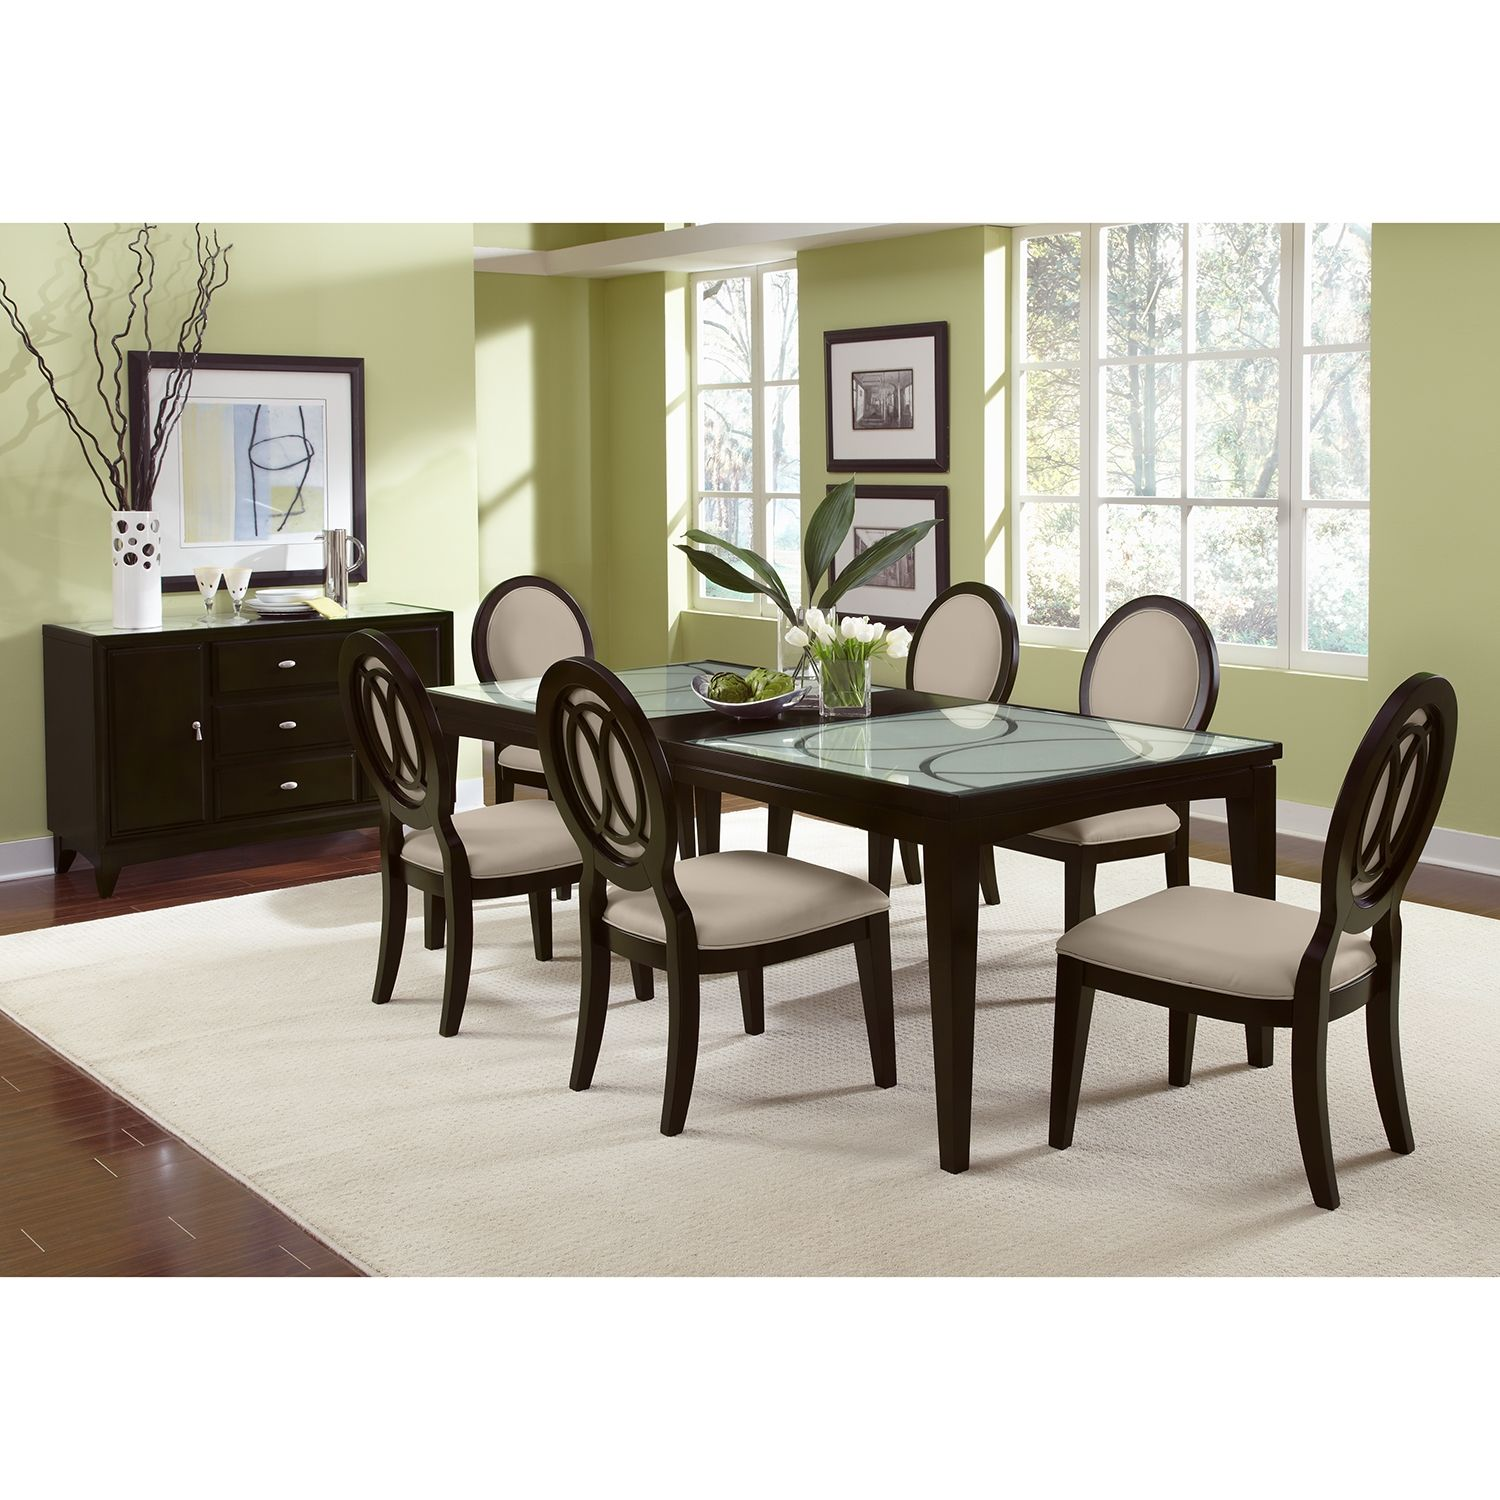 City Furniture Dining Room Sets: Cosmo Dining Room Table - Value City Furniture